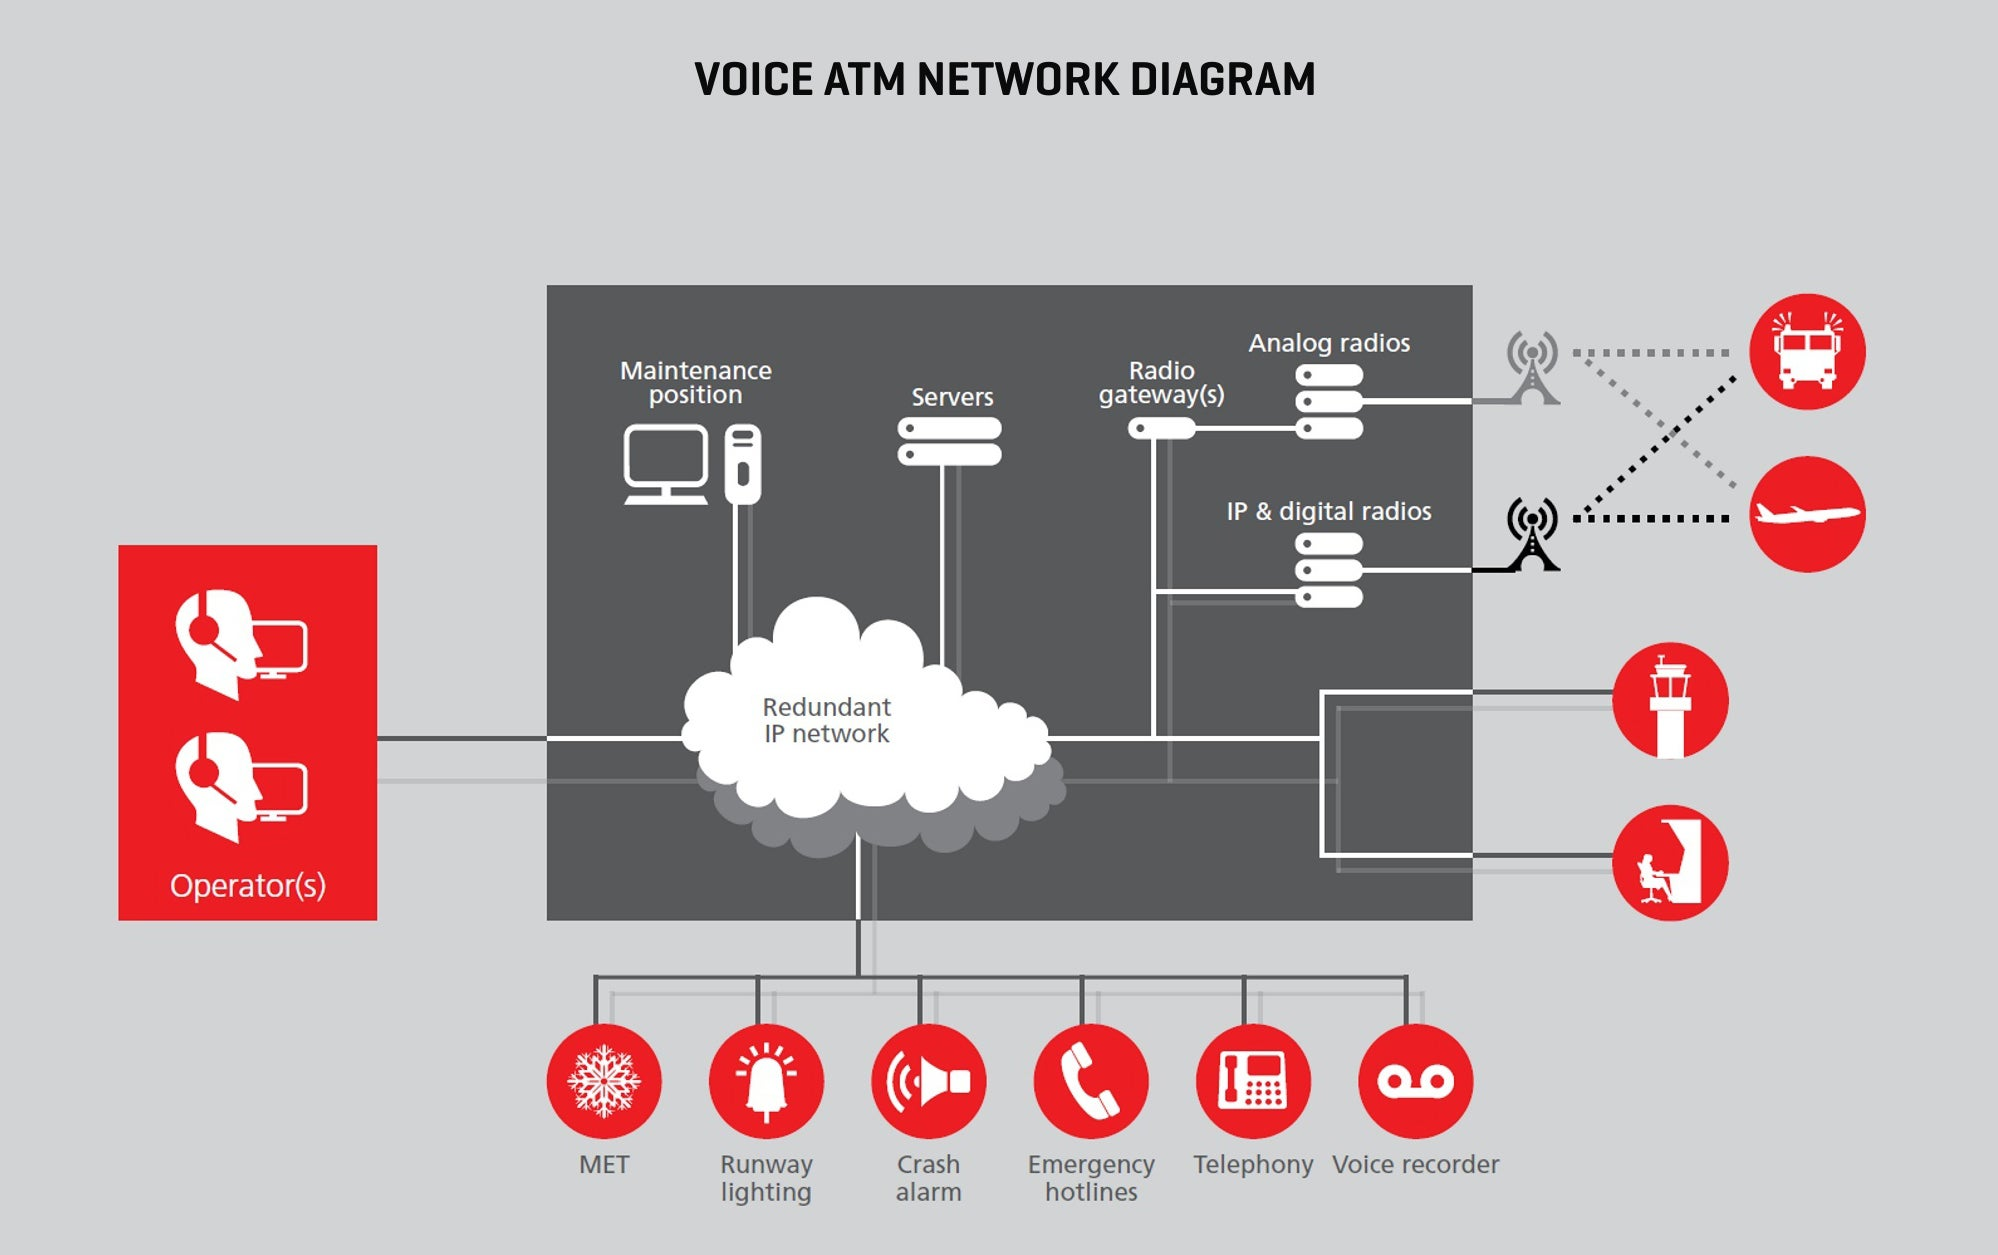 Voice ATM Network Diagram